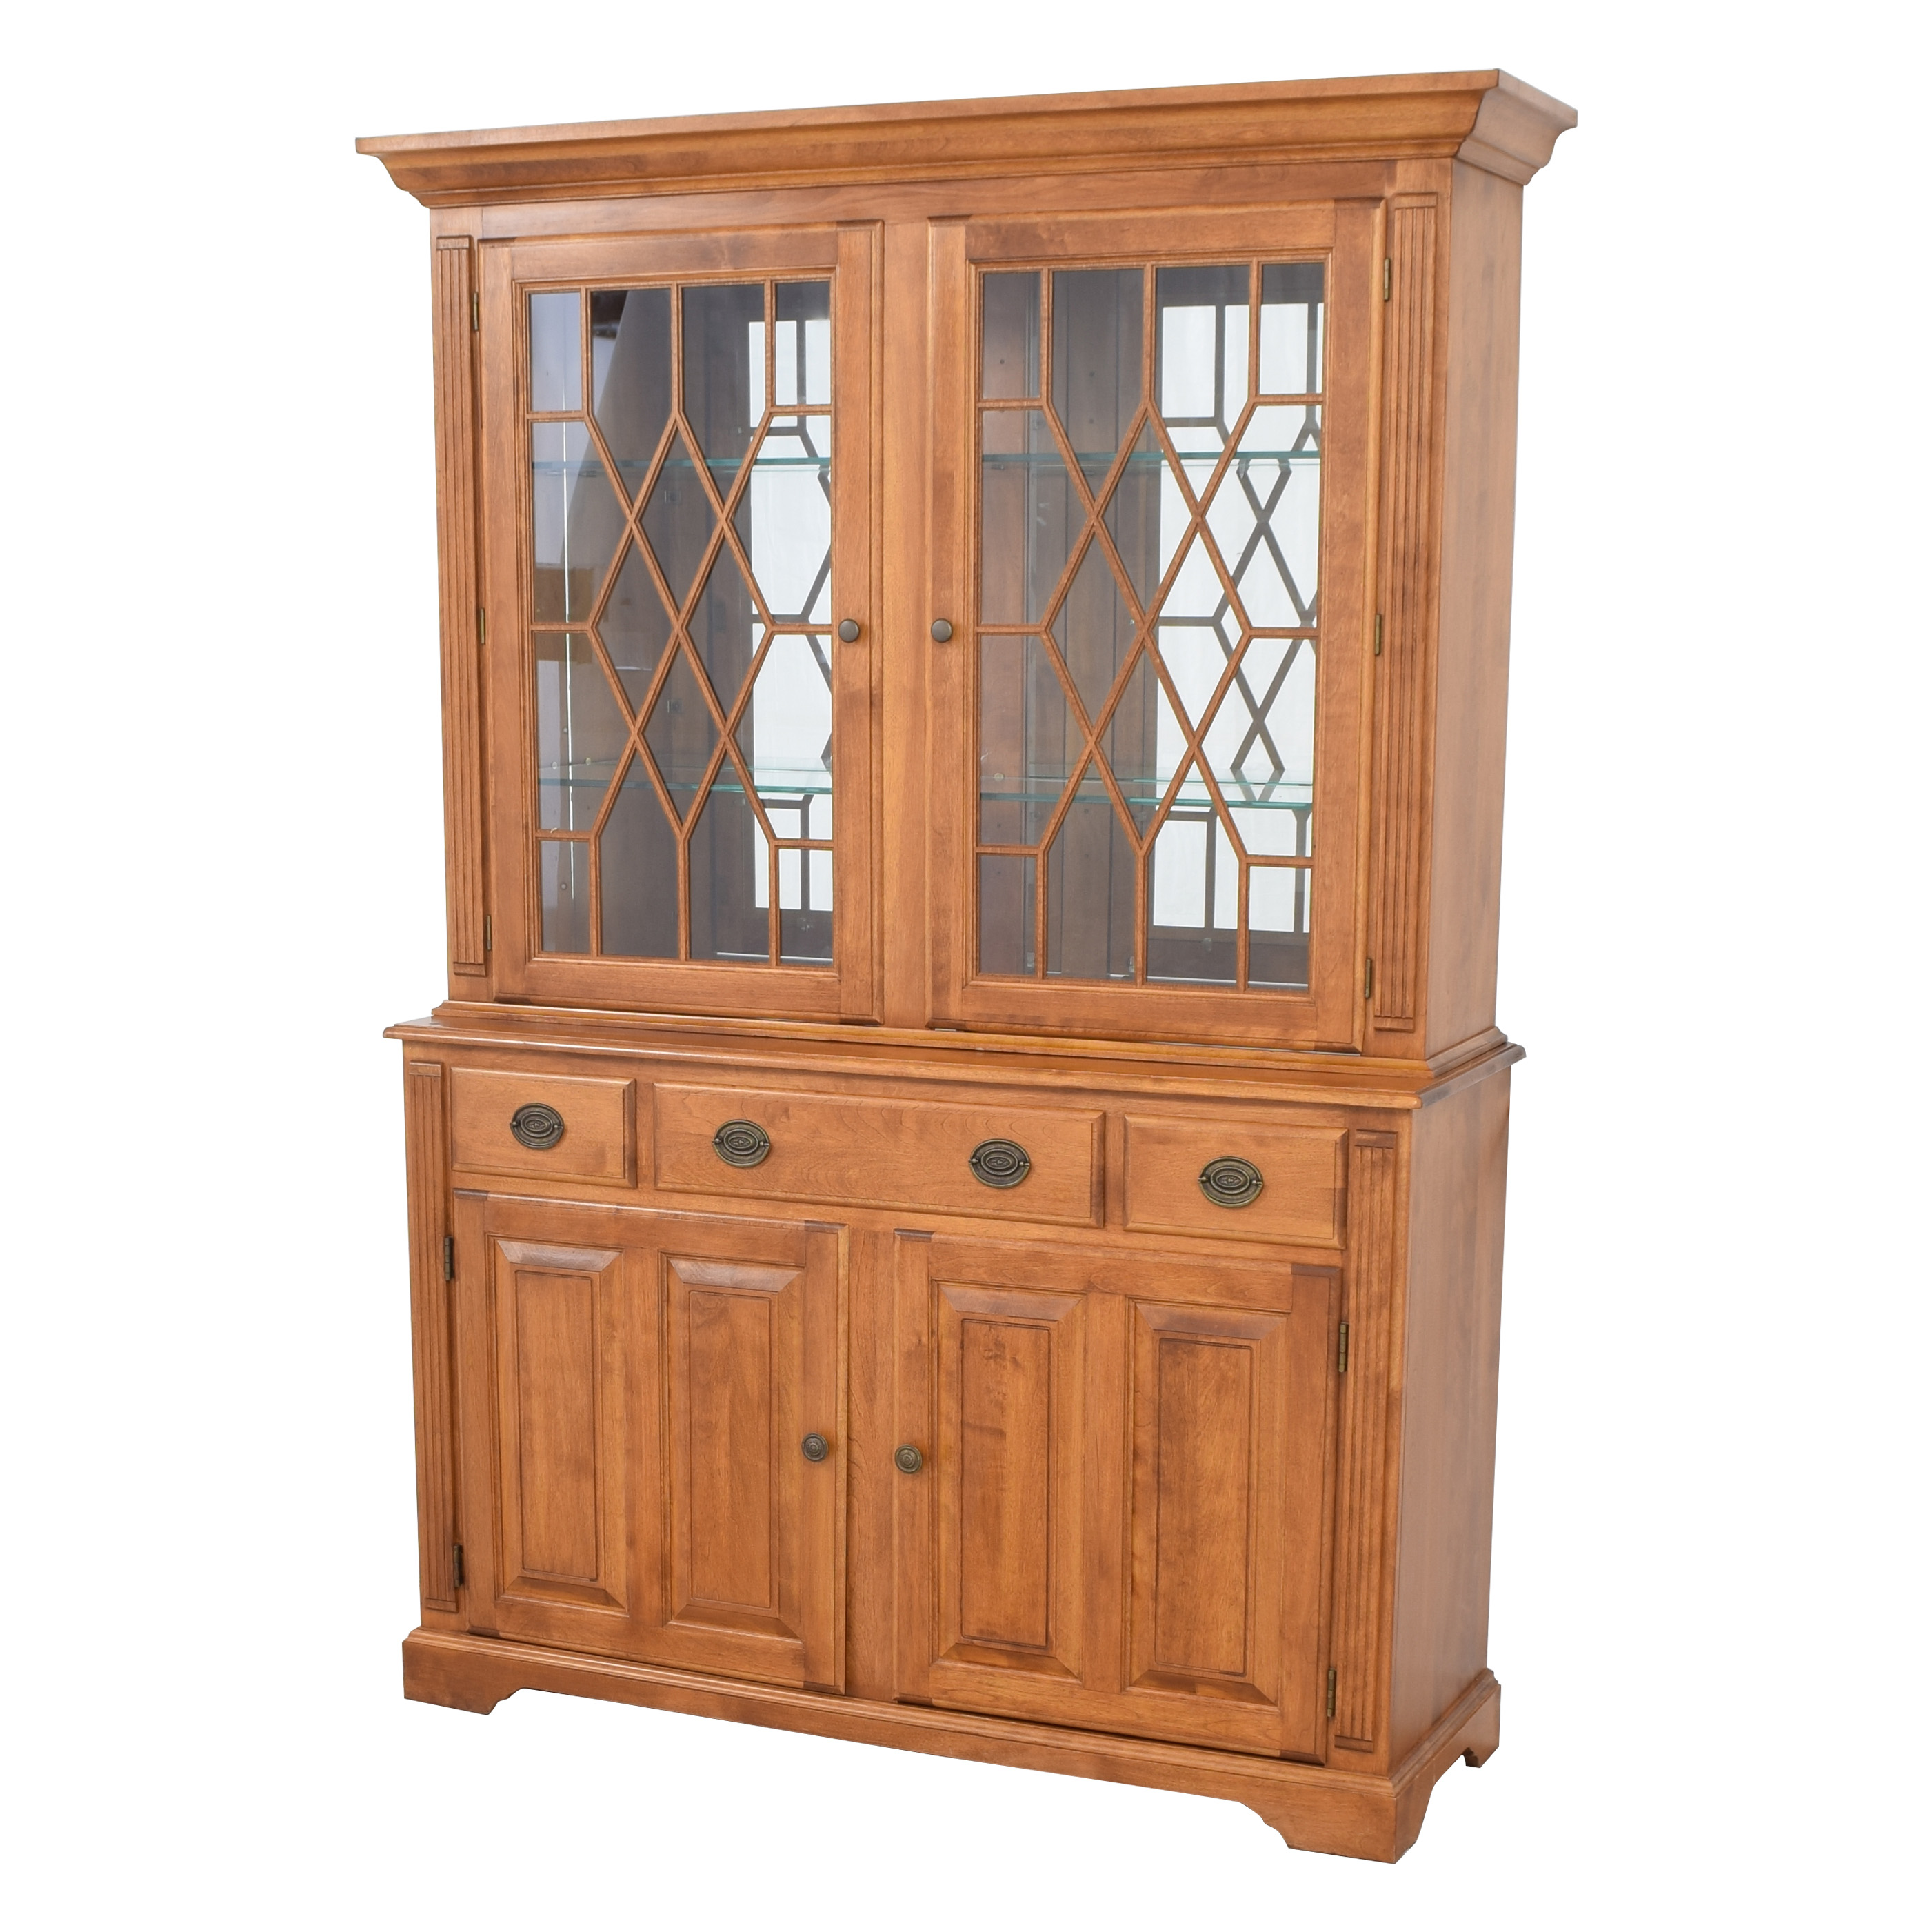 Nichols & Stone Nichols & Stone Vintage Cabinet Buffet with Shelves Cabinets & Sideboards